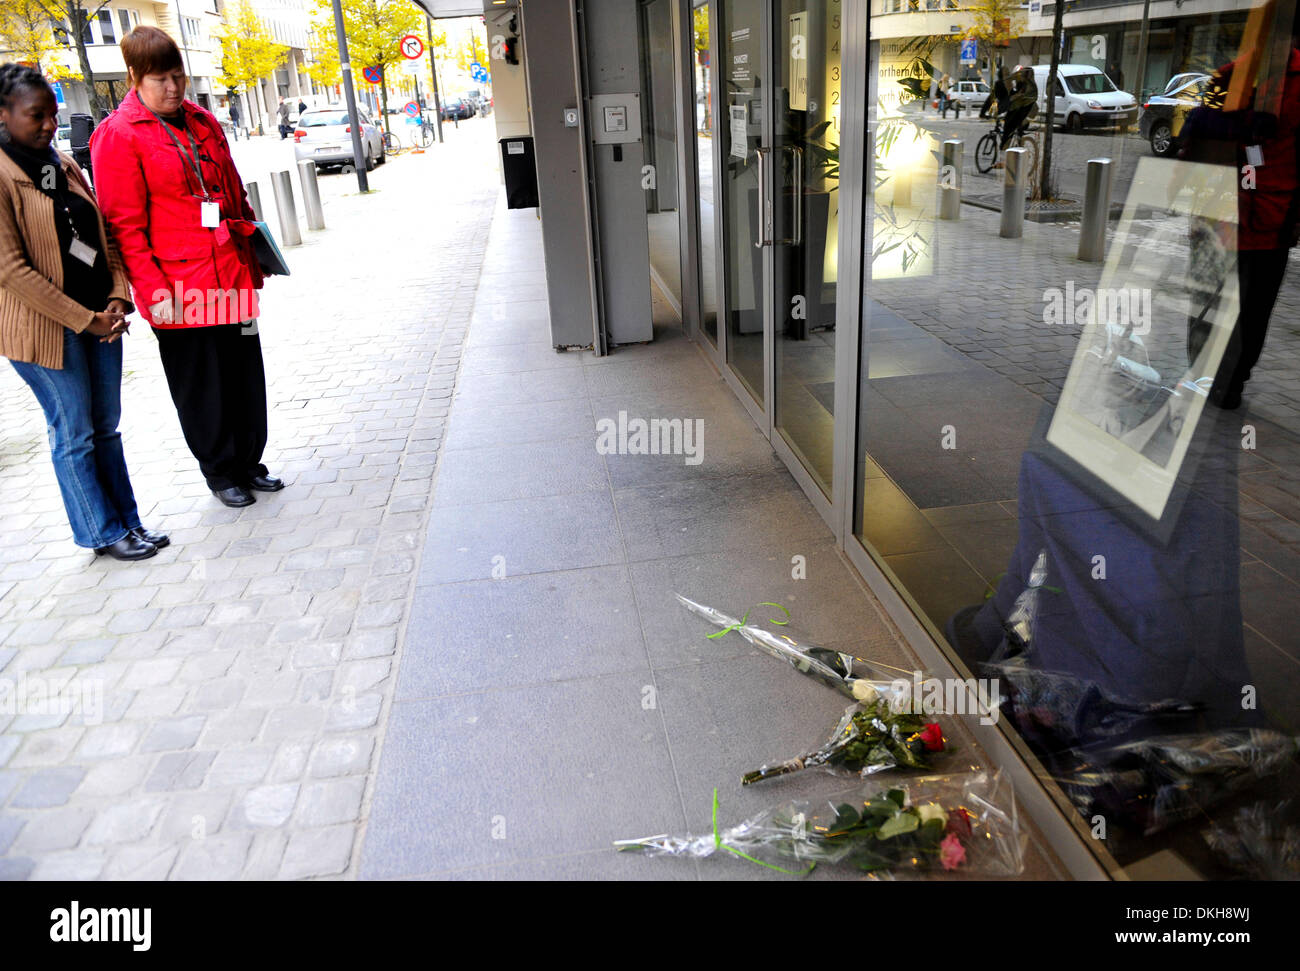 Brussels, Belgium. 6th December 2013. Two ladies mourn in front of portrait of the late Nelson Mandela outside the South African embassy in Brussels, capital of Belgium, Dec 6, 2013. Condolence messages are pouring in for the late former South African president from all over the world on Friday. (Xinhua/Ye Pingfan/Alamy Live News) - Stock Image